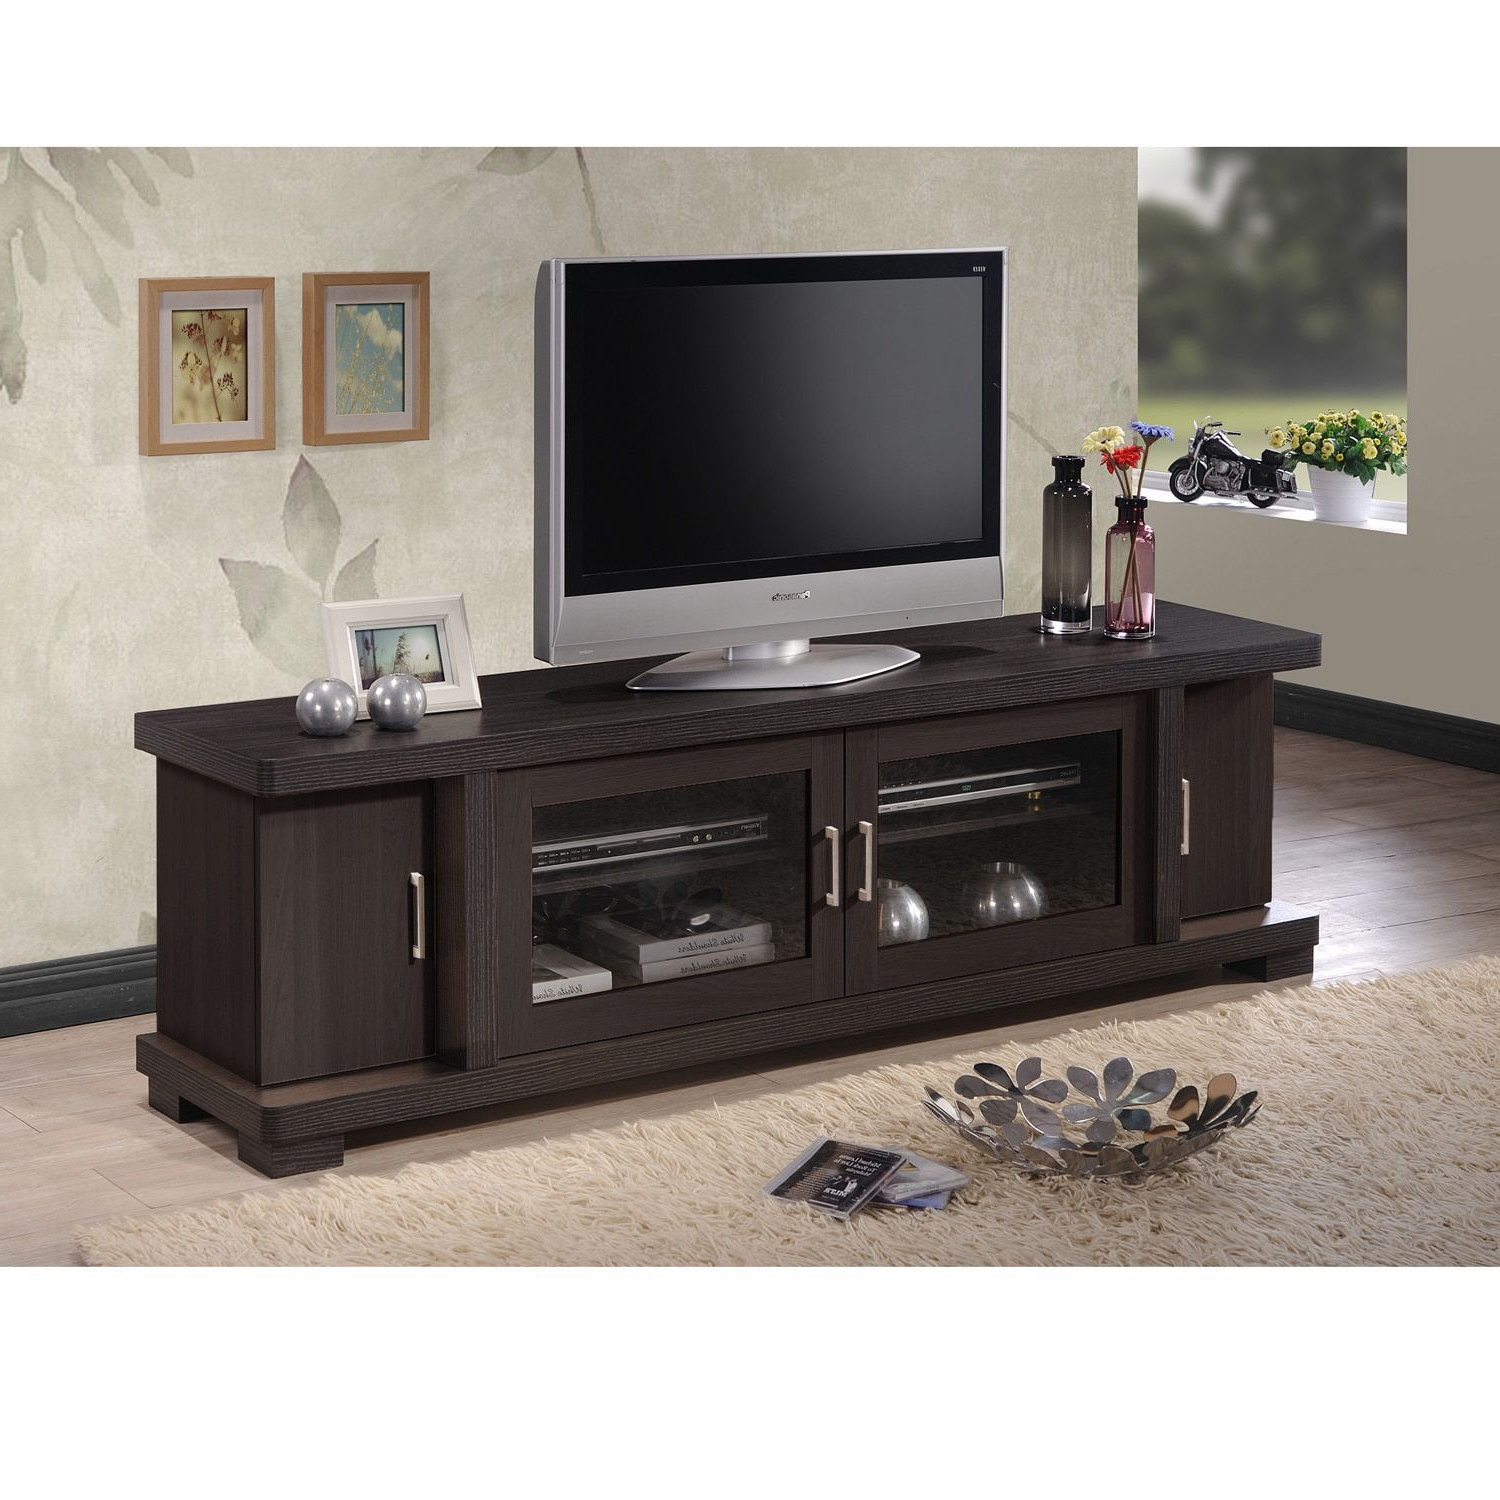 Popular Baxton Studio Vega Contemporary 70 Inch Dark Brown Wood Tv Cabinet With Regard To Tv Cabinets With Glass Doors (View 6 of 20)